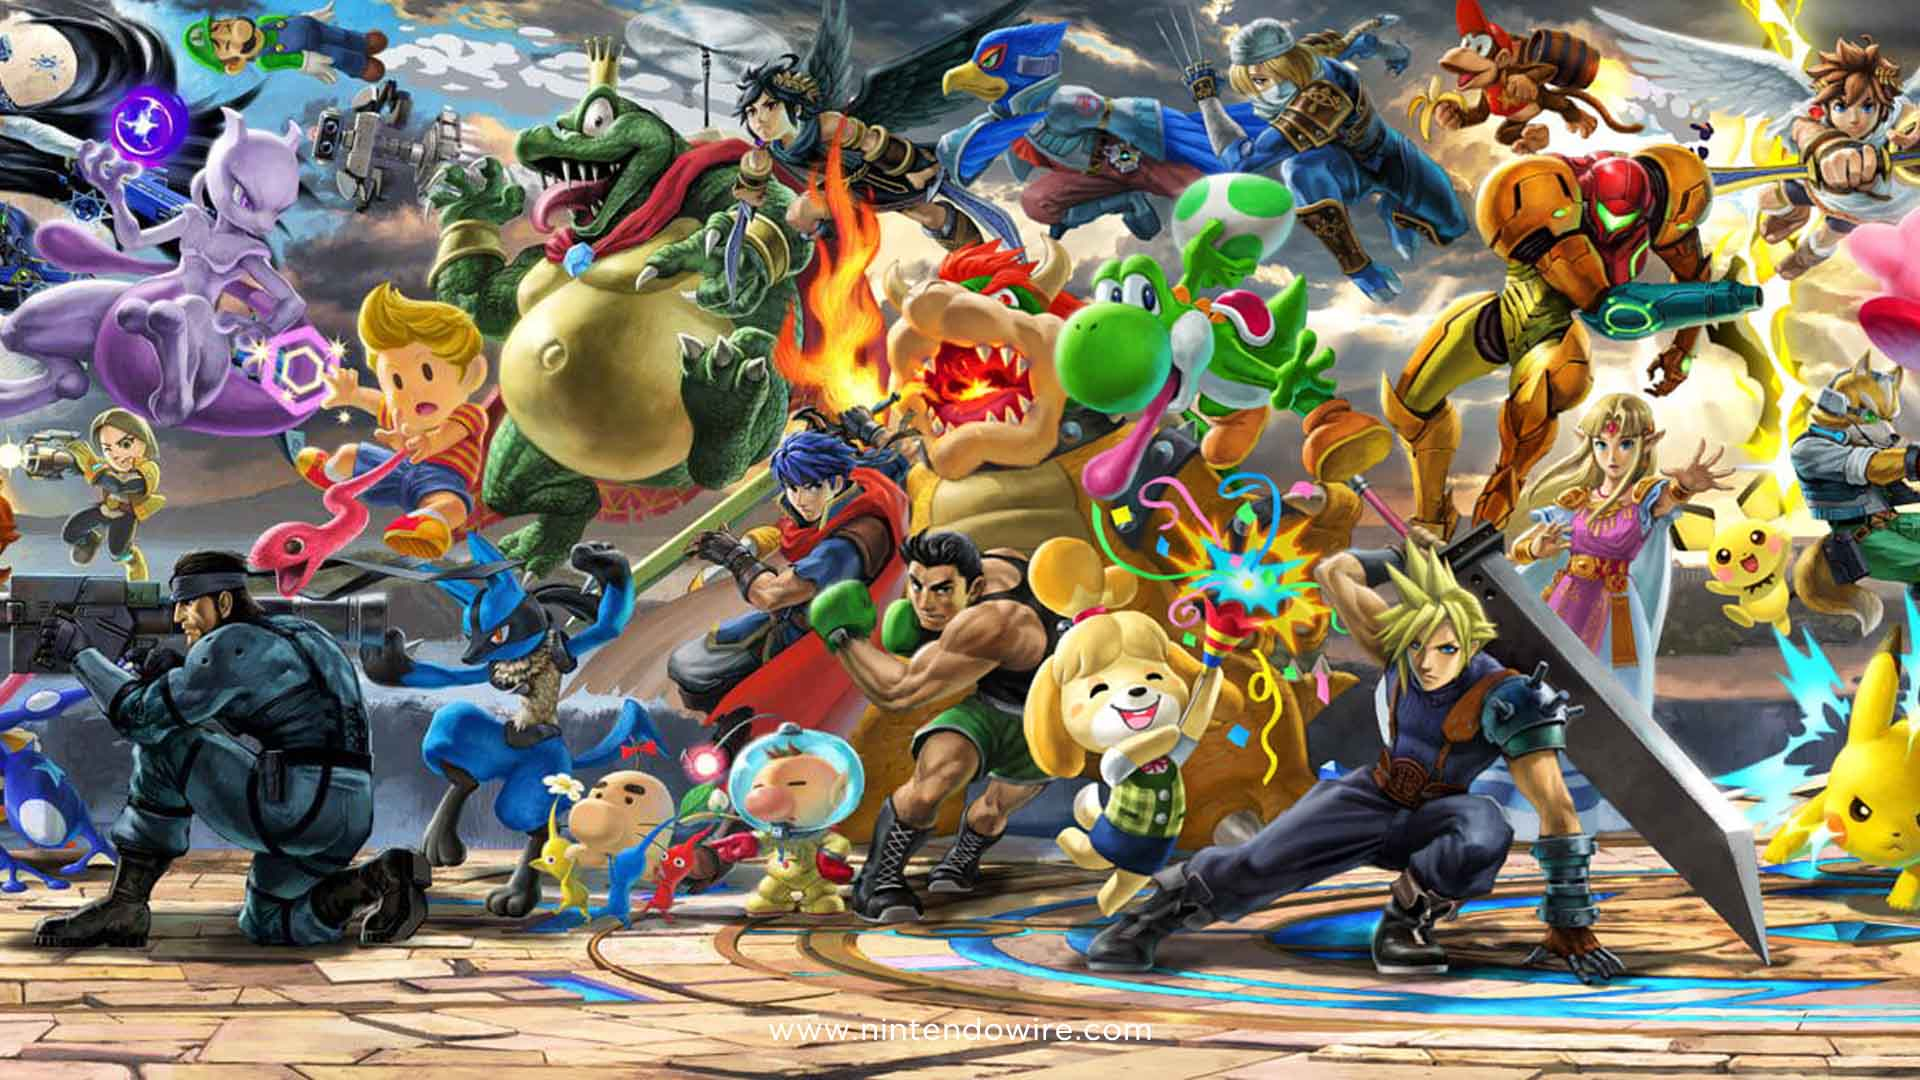 The Recent Super Smash Bros. Ultimate Geno DLC Leak Is Debunked And Proven To Be A Fake